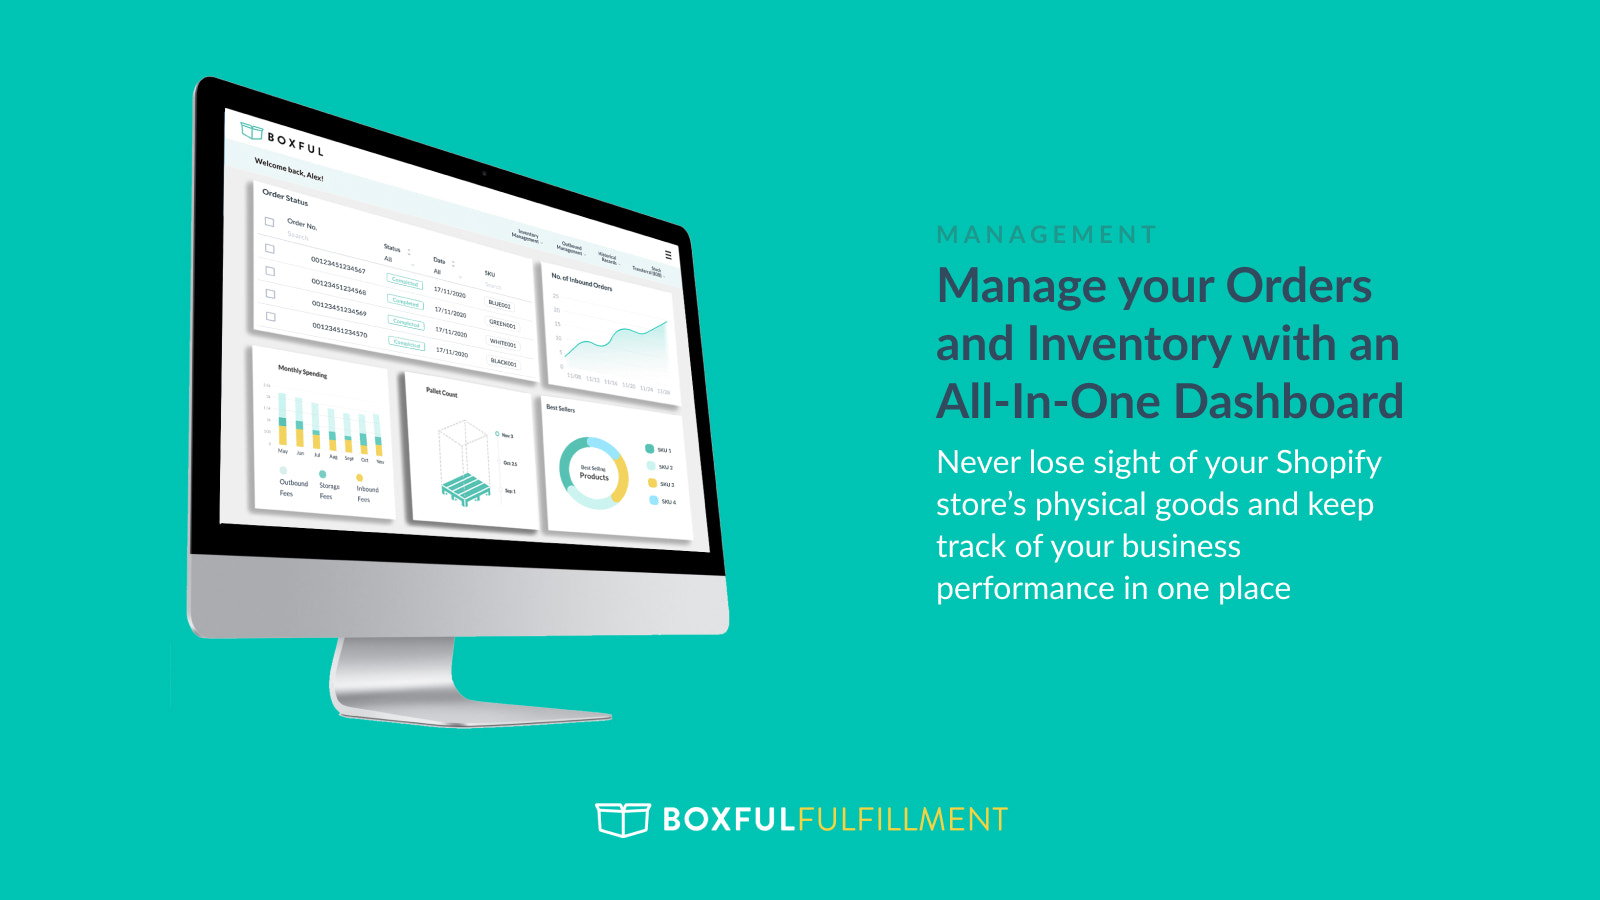 Inventory needs and business performance shown in one place